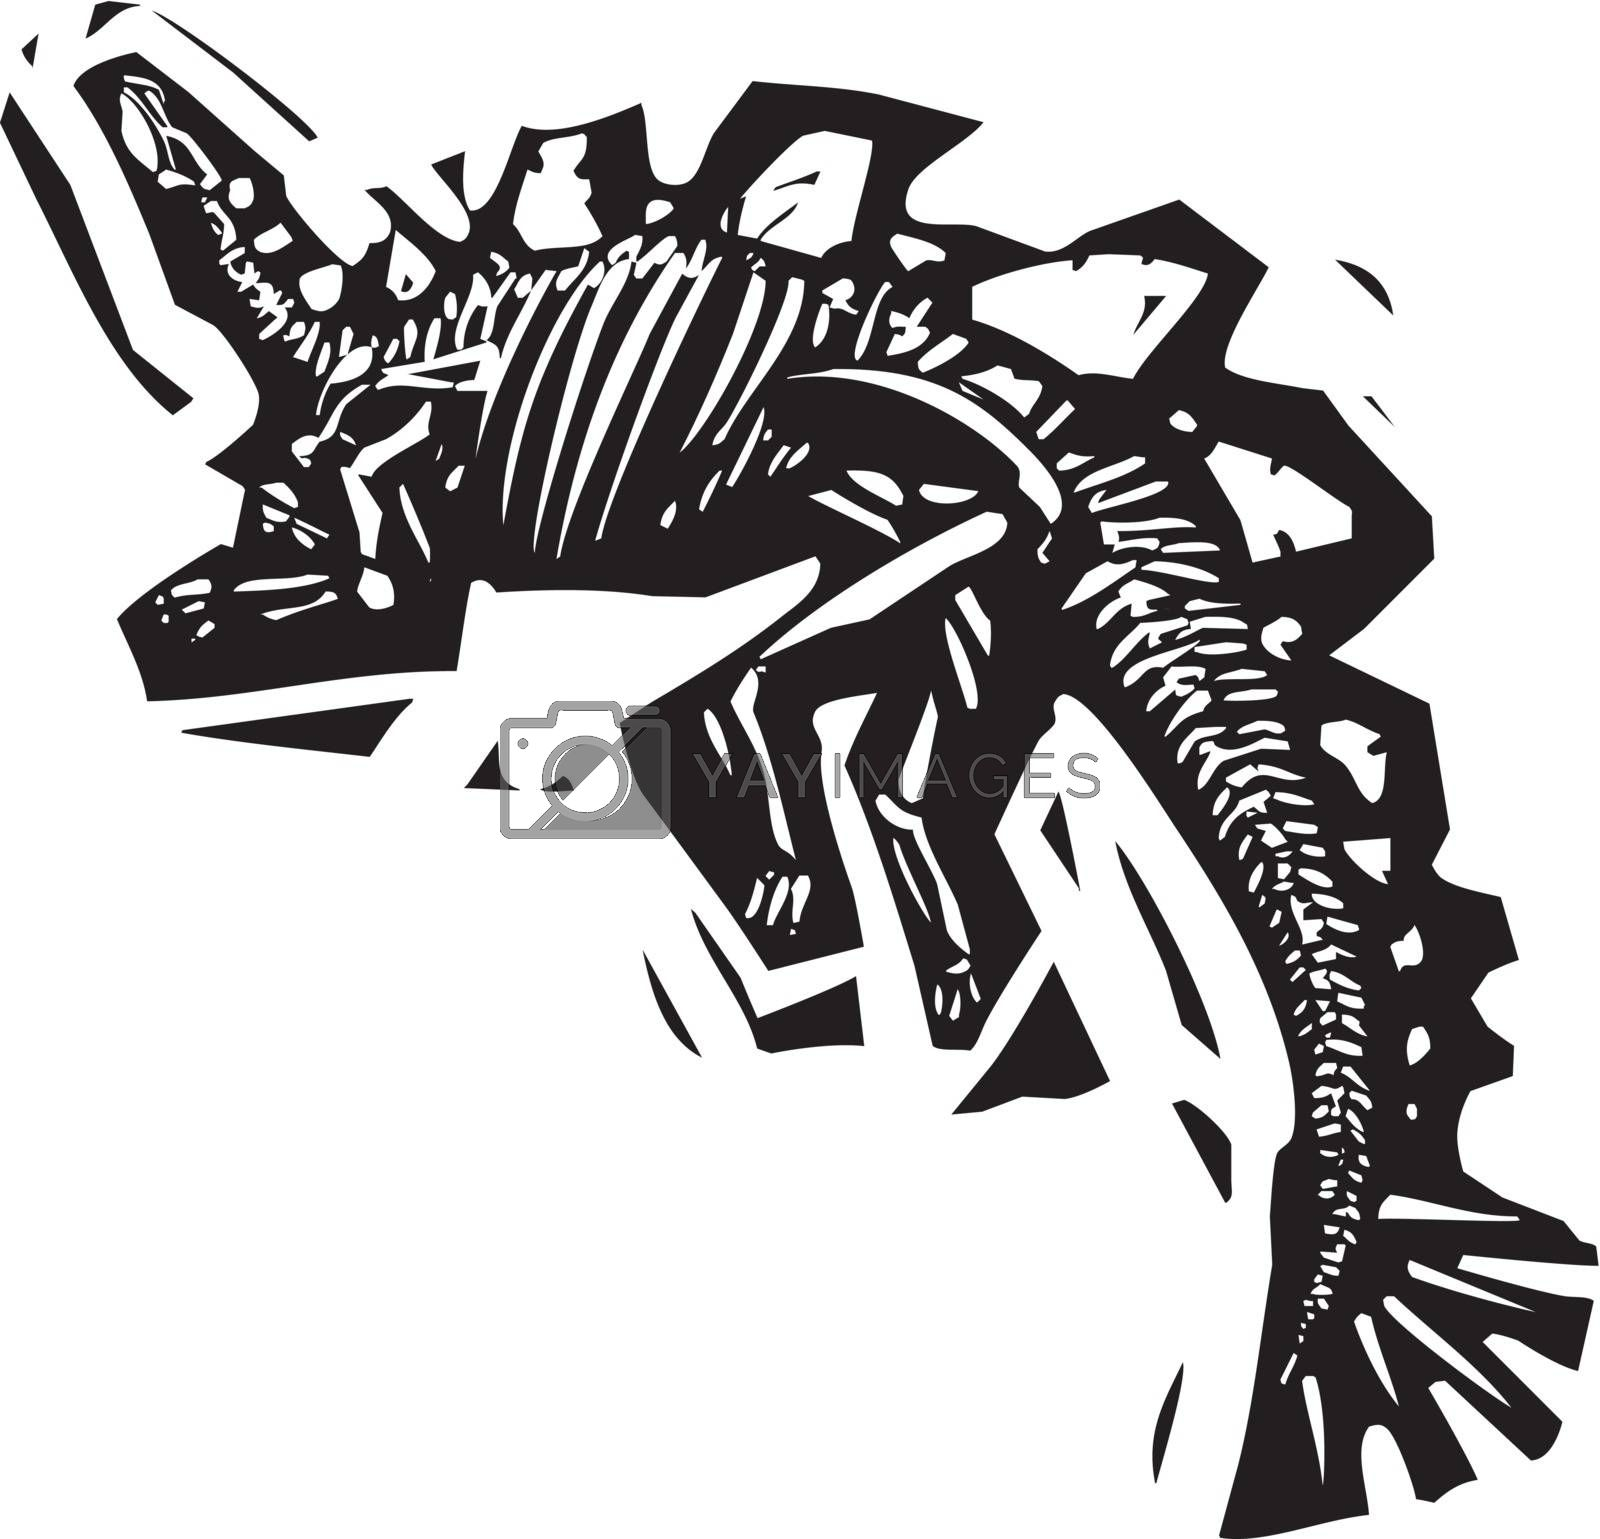 Woodcut style image of a fossil of a armored Stegosaurus with spikes